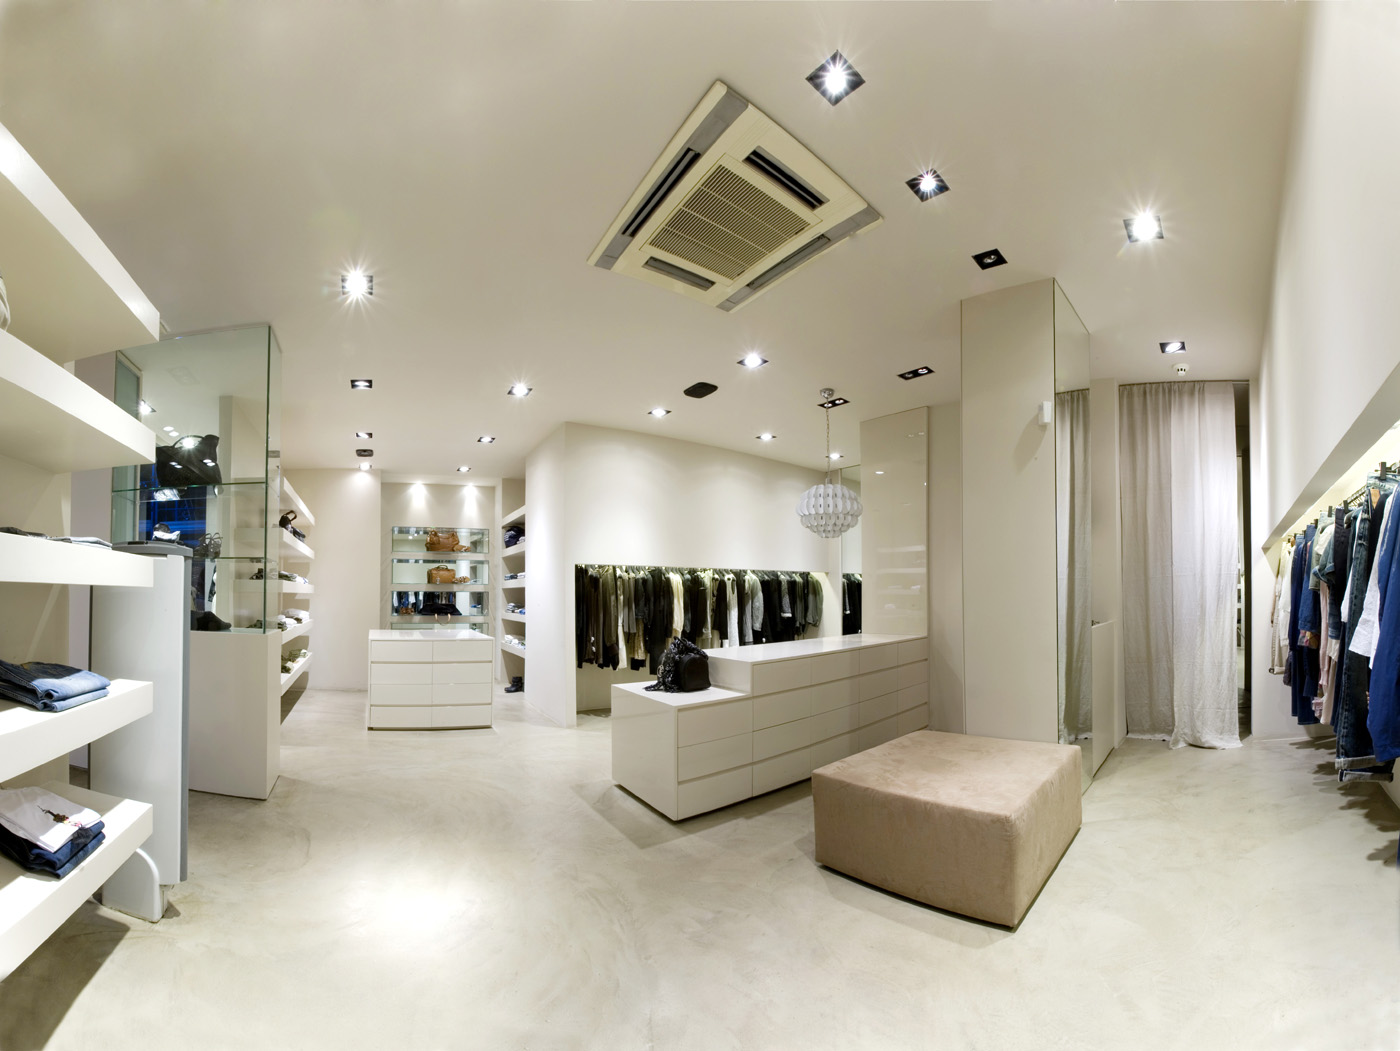 Zone clothing store 25003